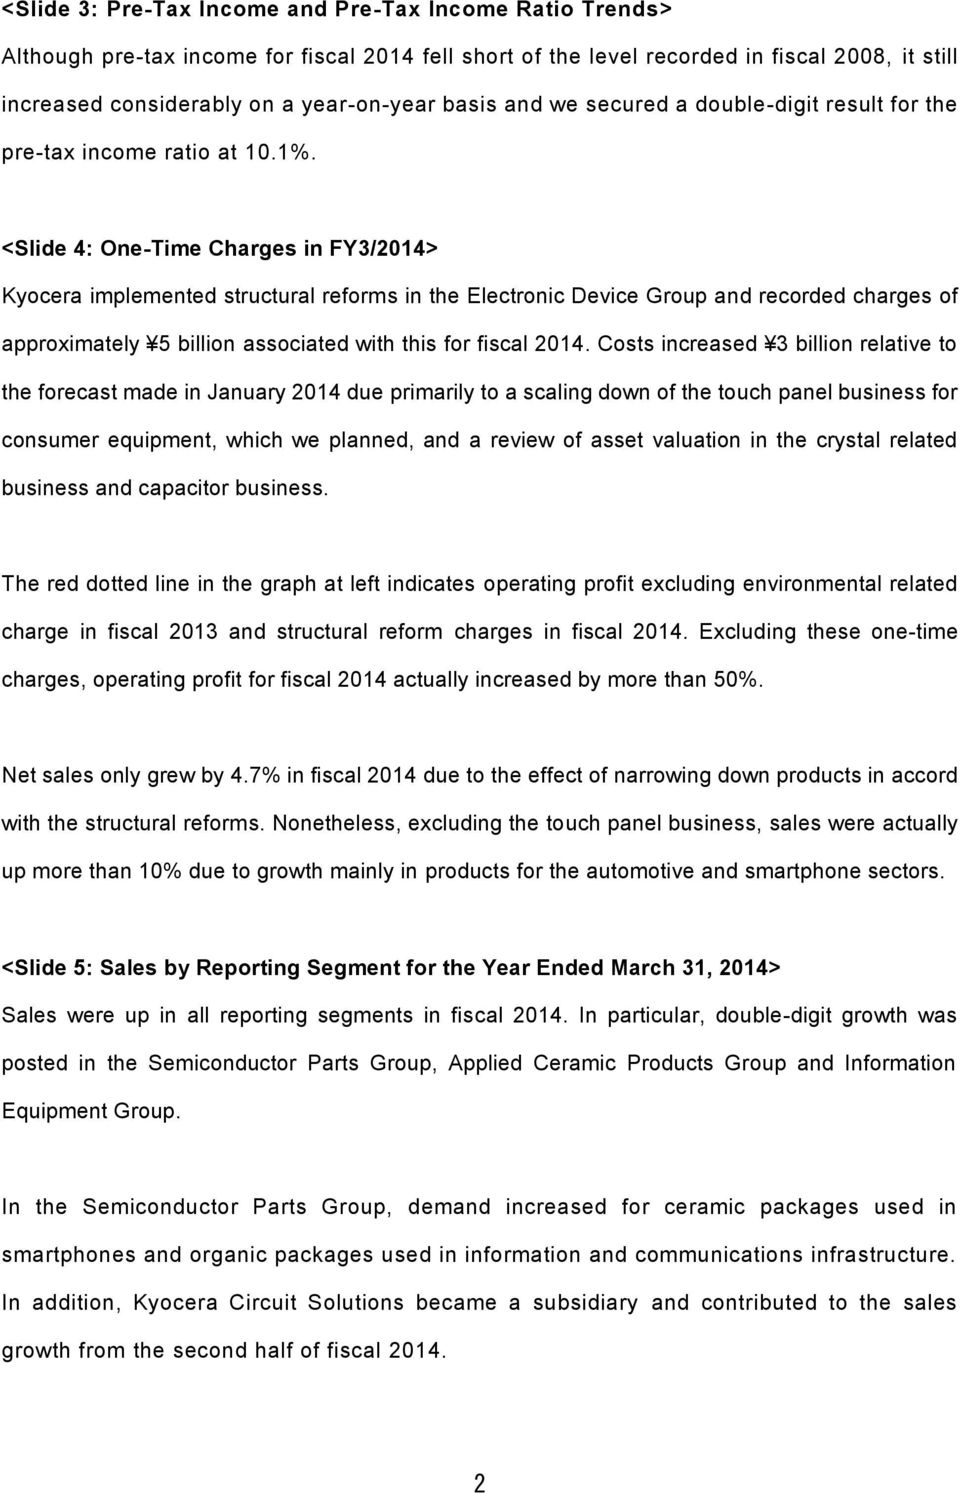 <Slide 4: One-Time Charges in FY3/2014> Kyocera implemented structural reforms in the Electronic Device Group and recorded charges of approximately 5 billion associated with this for fiscal 2014.